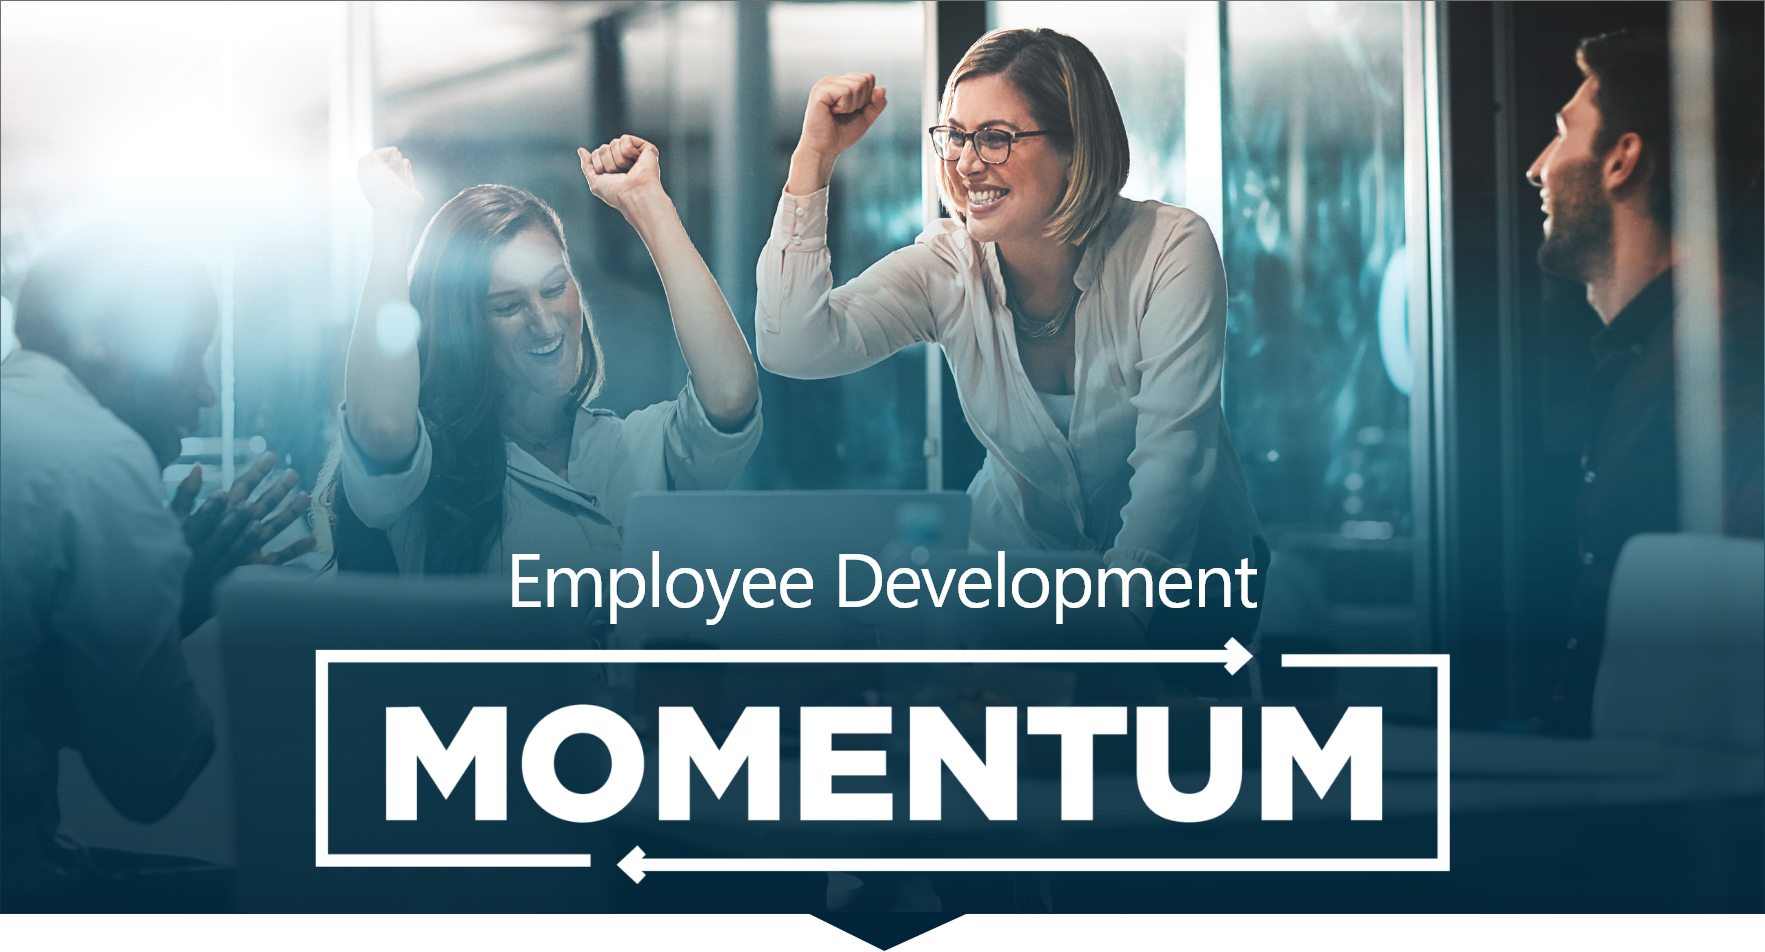 Employee Development | Momentum